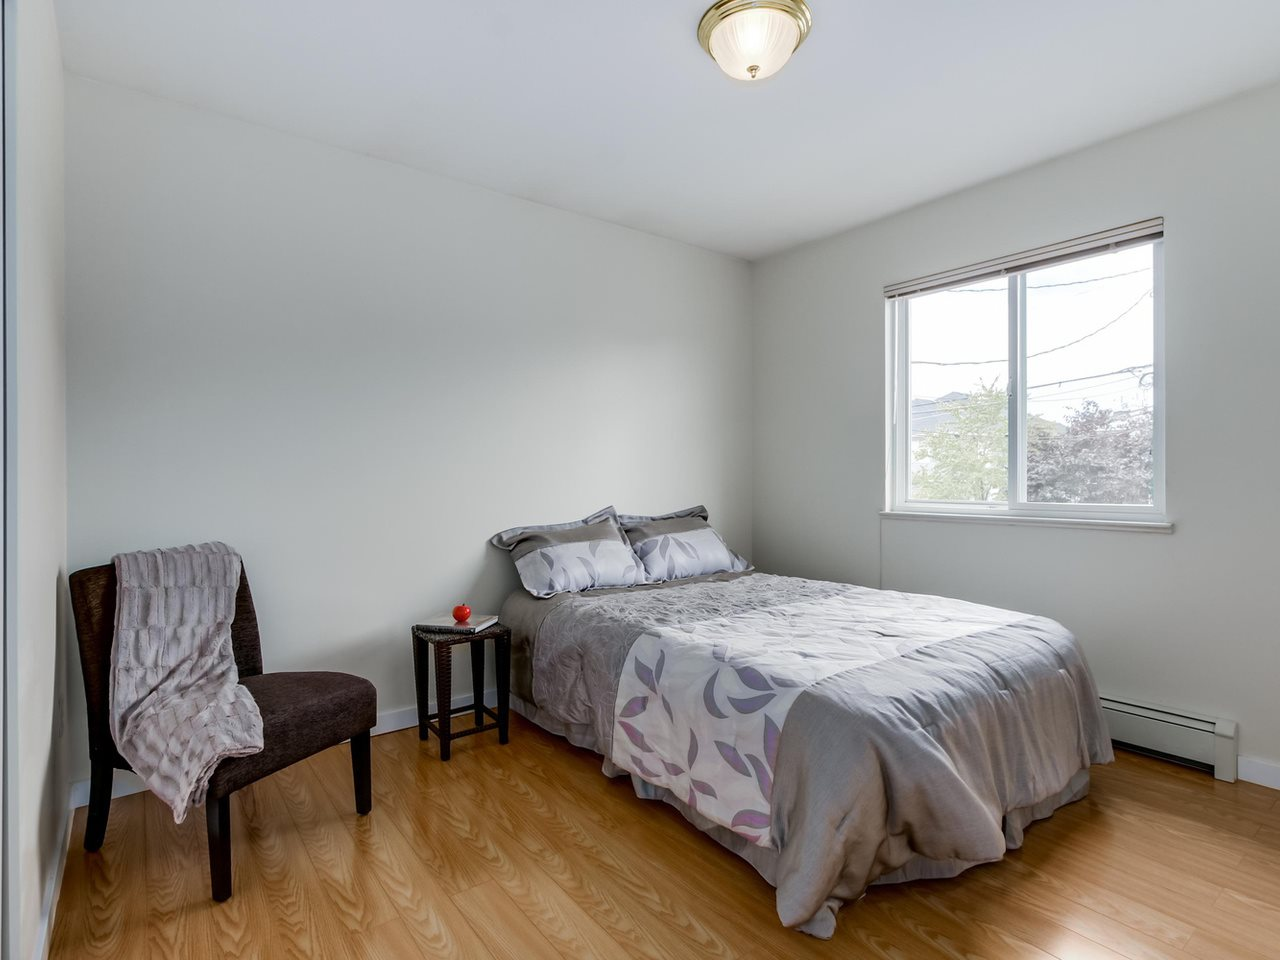 Photo 12: 1809 E 13TH AVENUE in Vancouver: Grandview VE House 1/2 Duplex for sale (Vancouver East)  : MLS(r) # R2081269